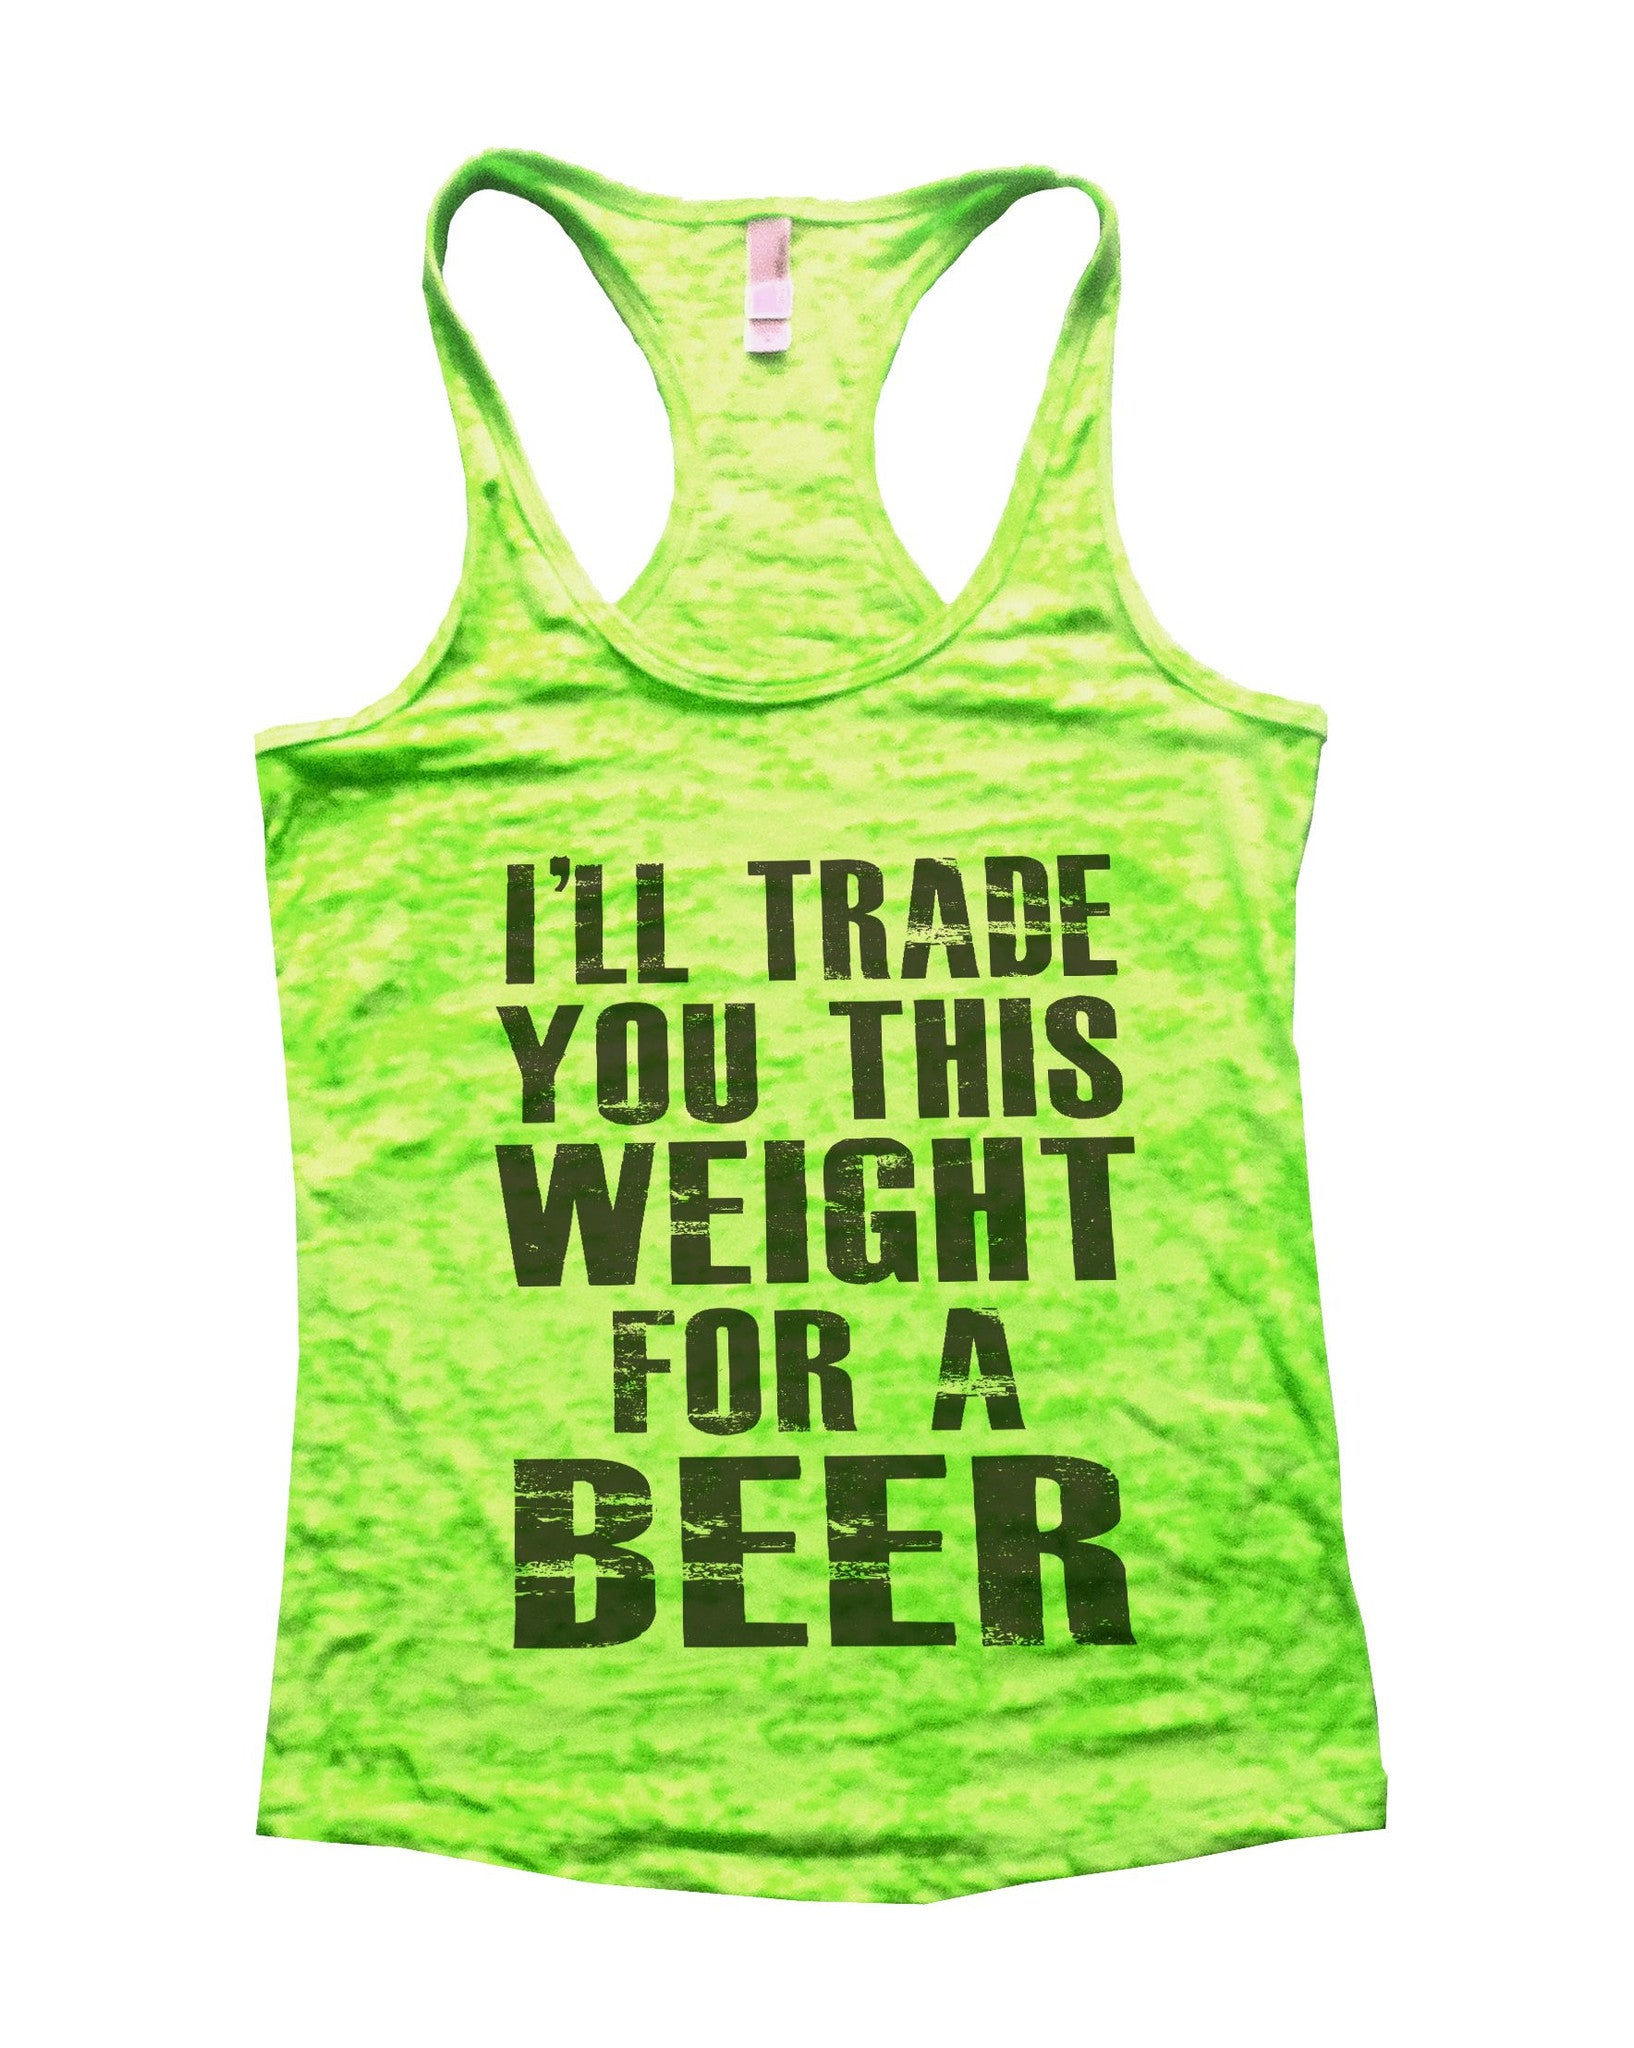 I'll Trade You This Weight For A Beer Burnout Tank Top By BurnoutTankTops.com - 628 - Funny Shirts Tank Tops Burnouts and Triblends  - 2